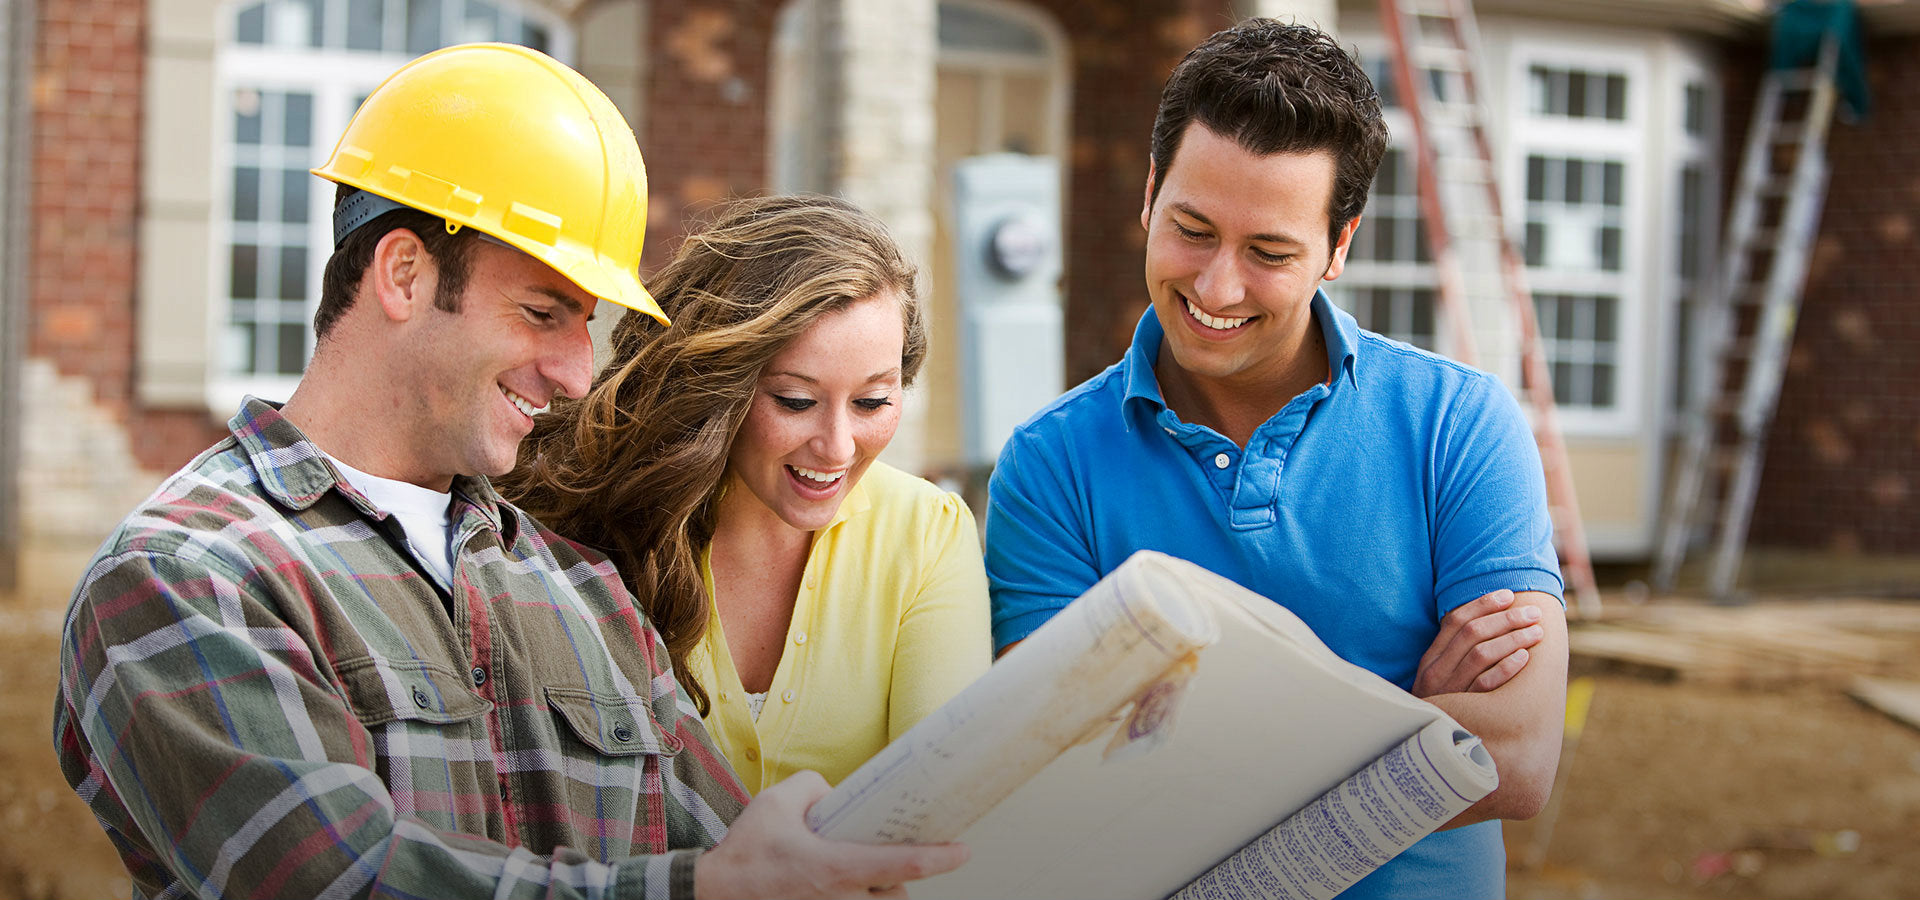 How to Choose the Most Qualified Home Contractor